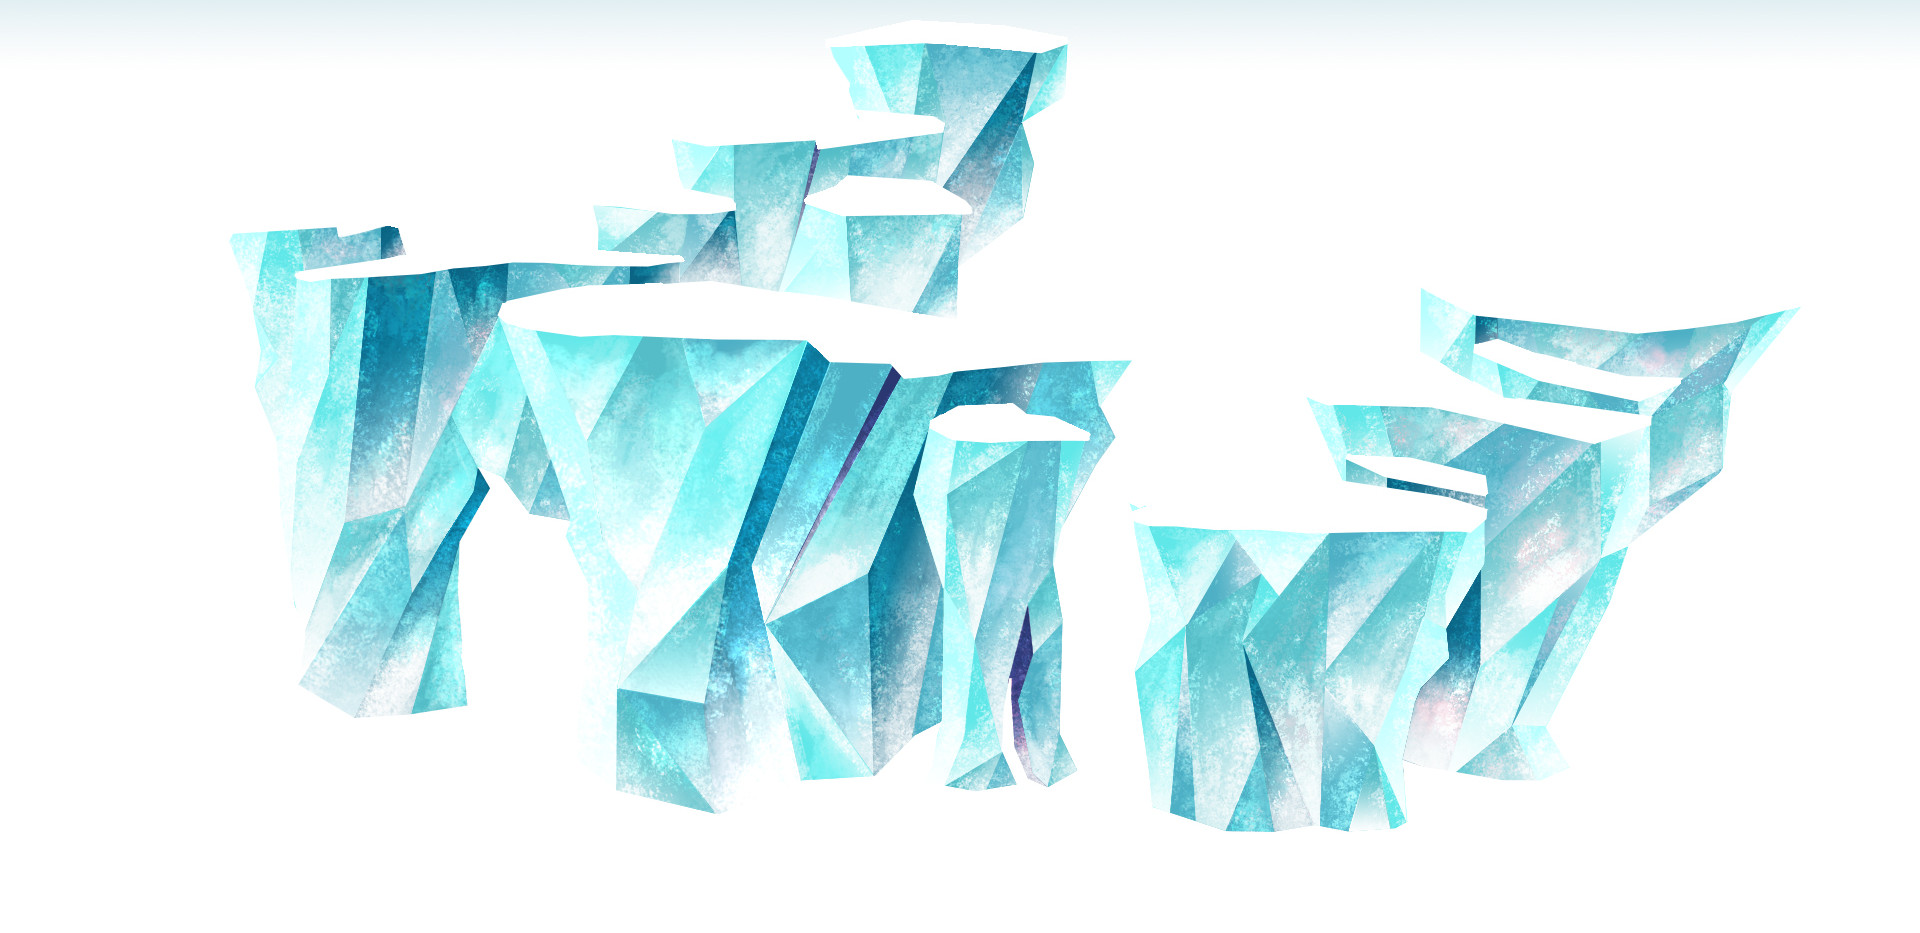 Decors_low_poly__traumaexemple_plateform